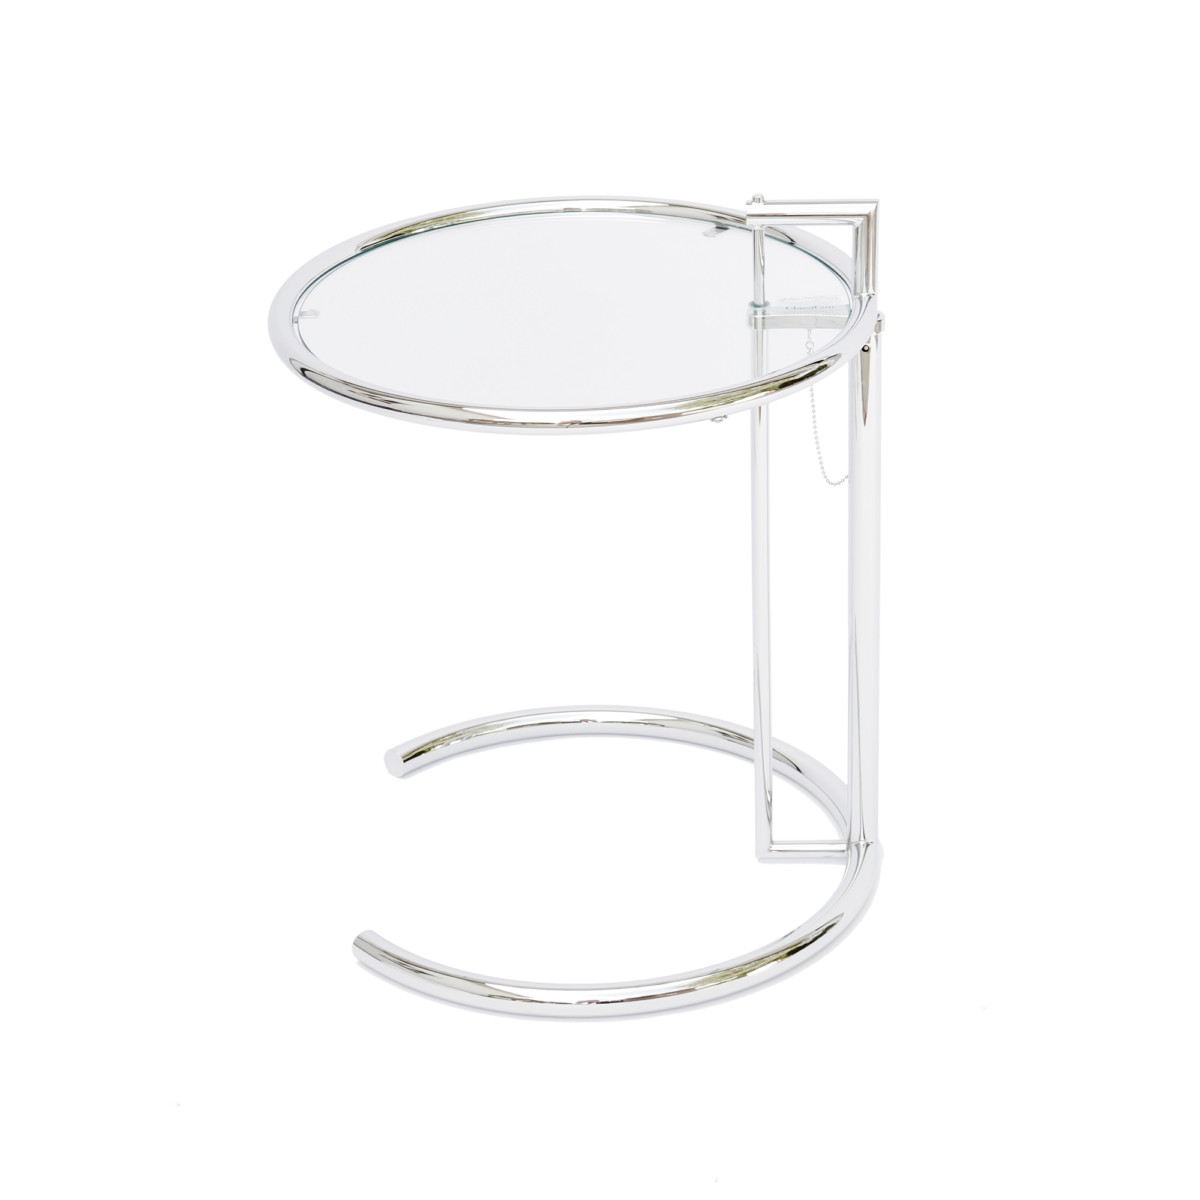 Eileen Gray Tisch Classicon Adjustable Table E 1027 Design Eileen Gray